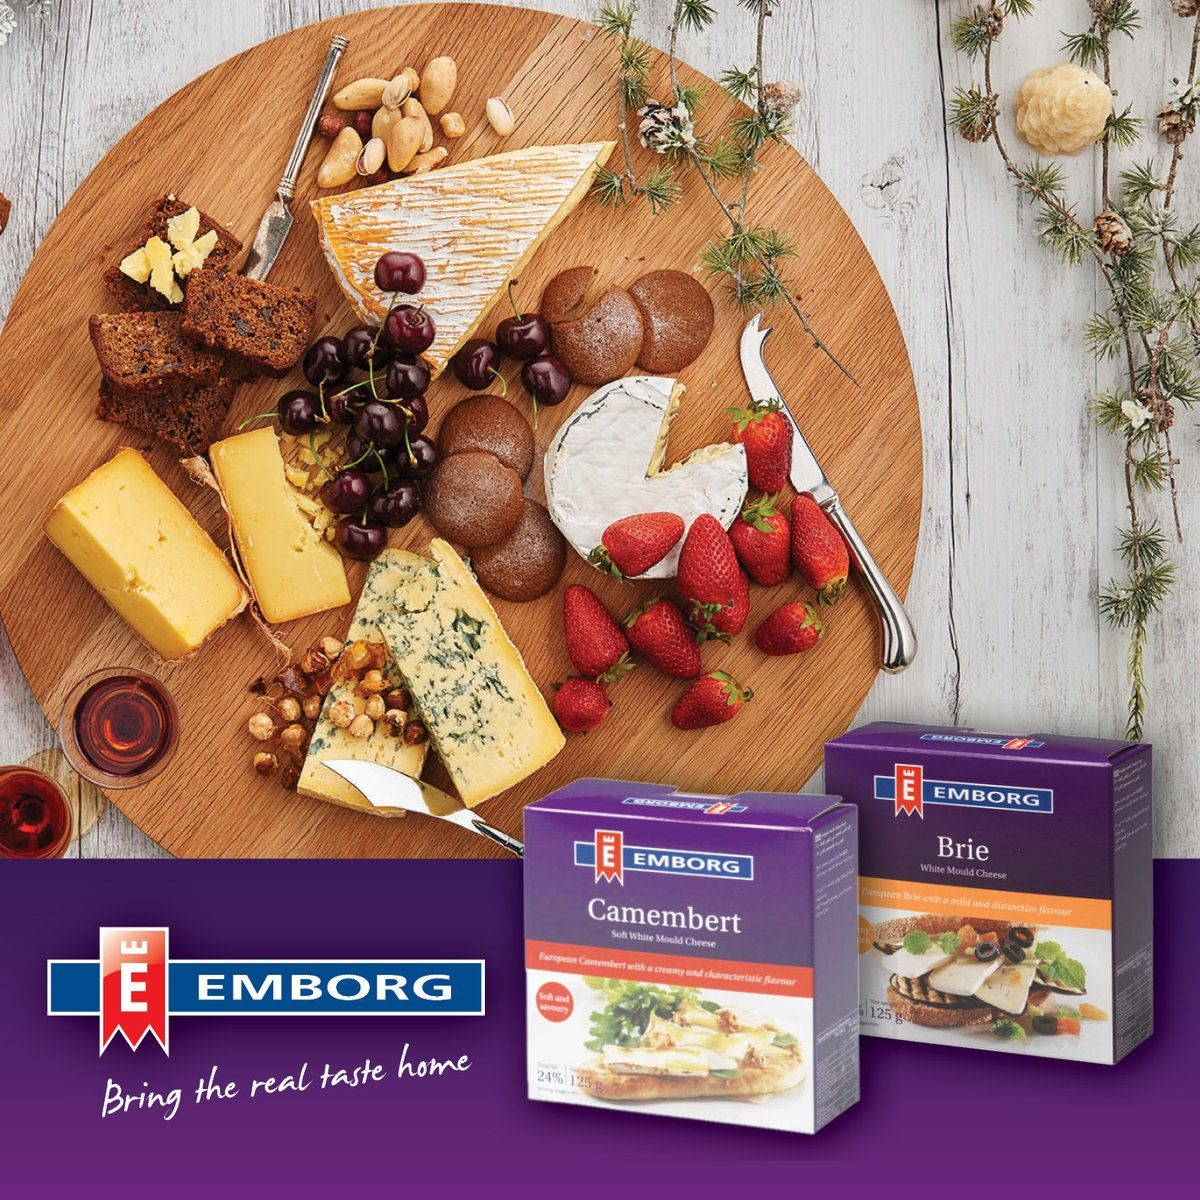 Camembert Or Brie Its Always A Tough Choice Serve Them Both Emborg Camembert Brie Make The Per Perfect Cheese Board Healthy Grilled Cheese Recipes Food